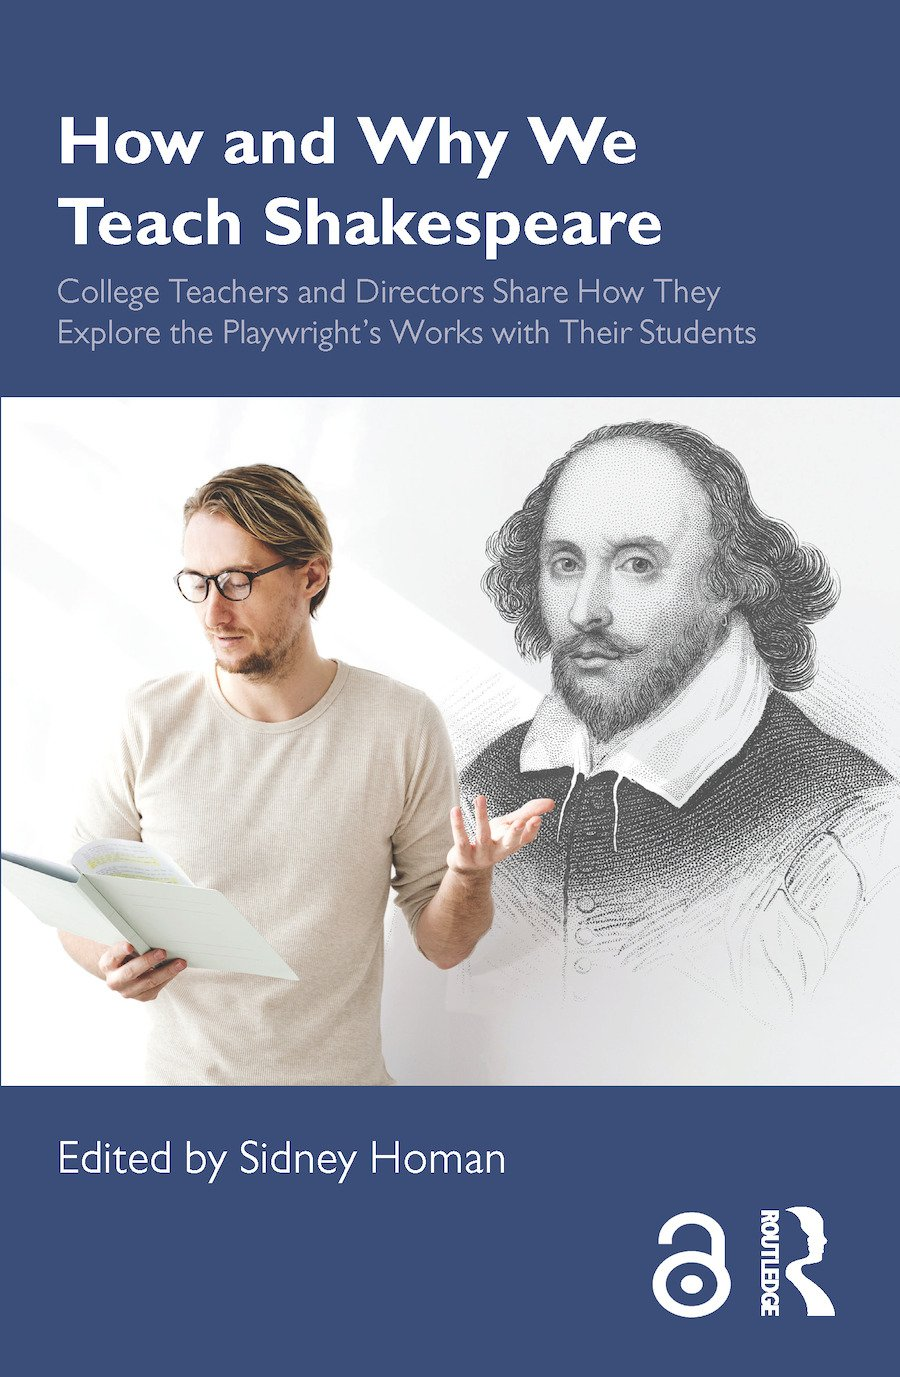 How and Why We Teach Shakespeare: College Teachers and Directors Share How They Explore the Playwright's Works with Their Students book cover